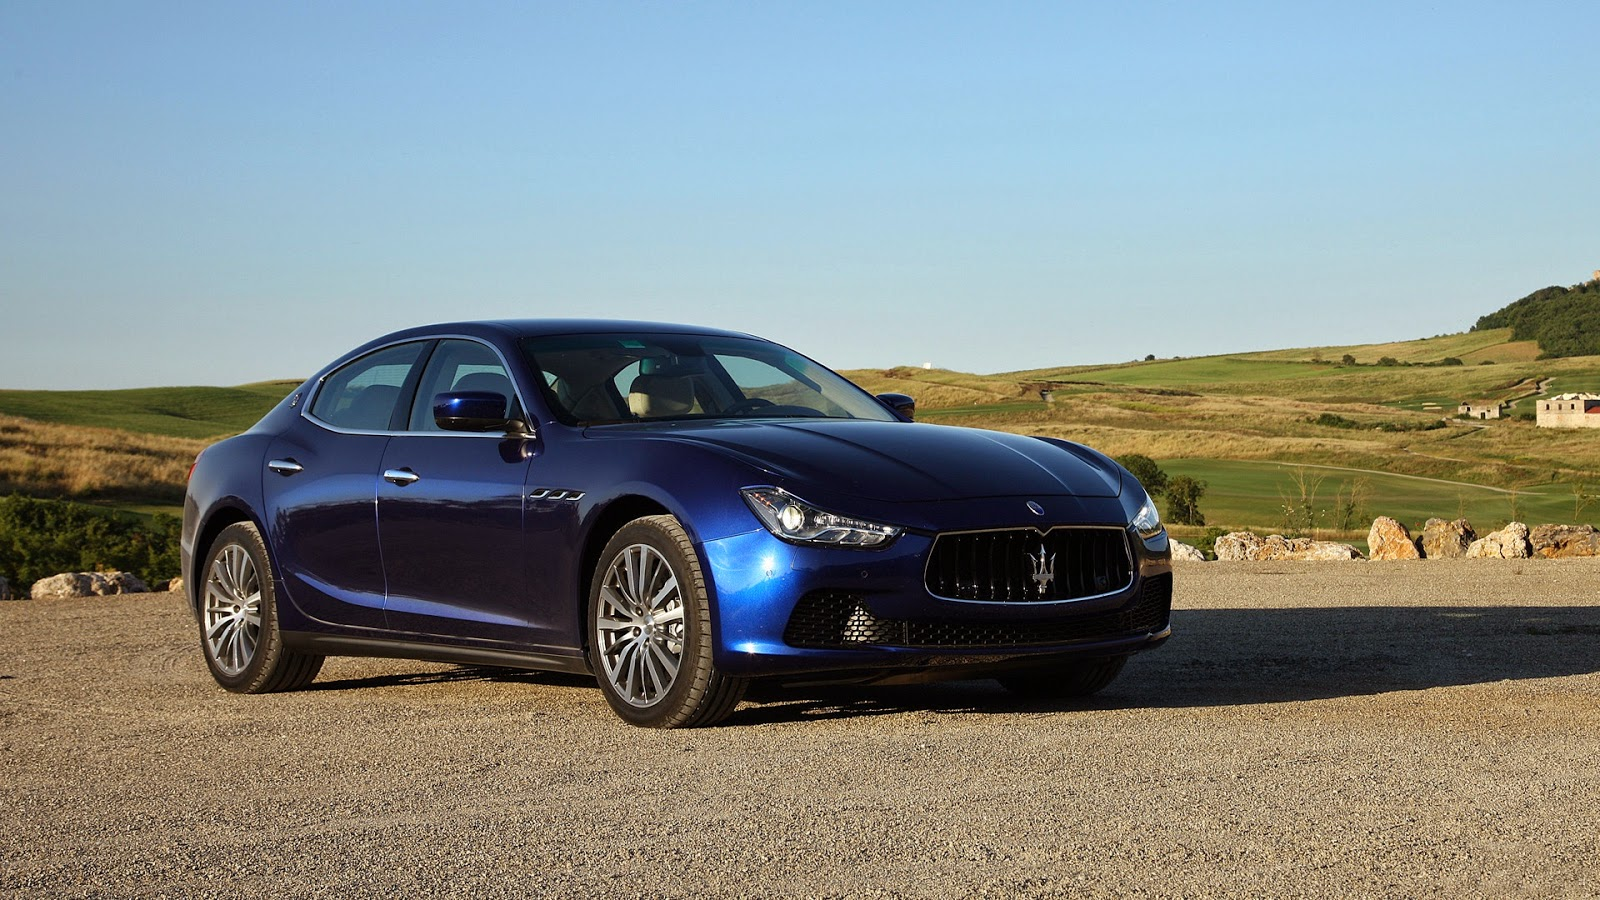 Maserati Ghibli wallpapers hd | HD Wallpaper with cars ...